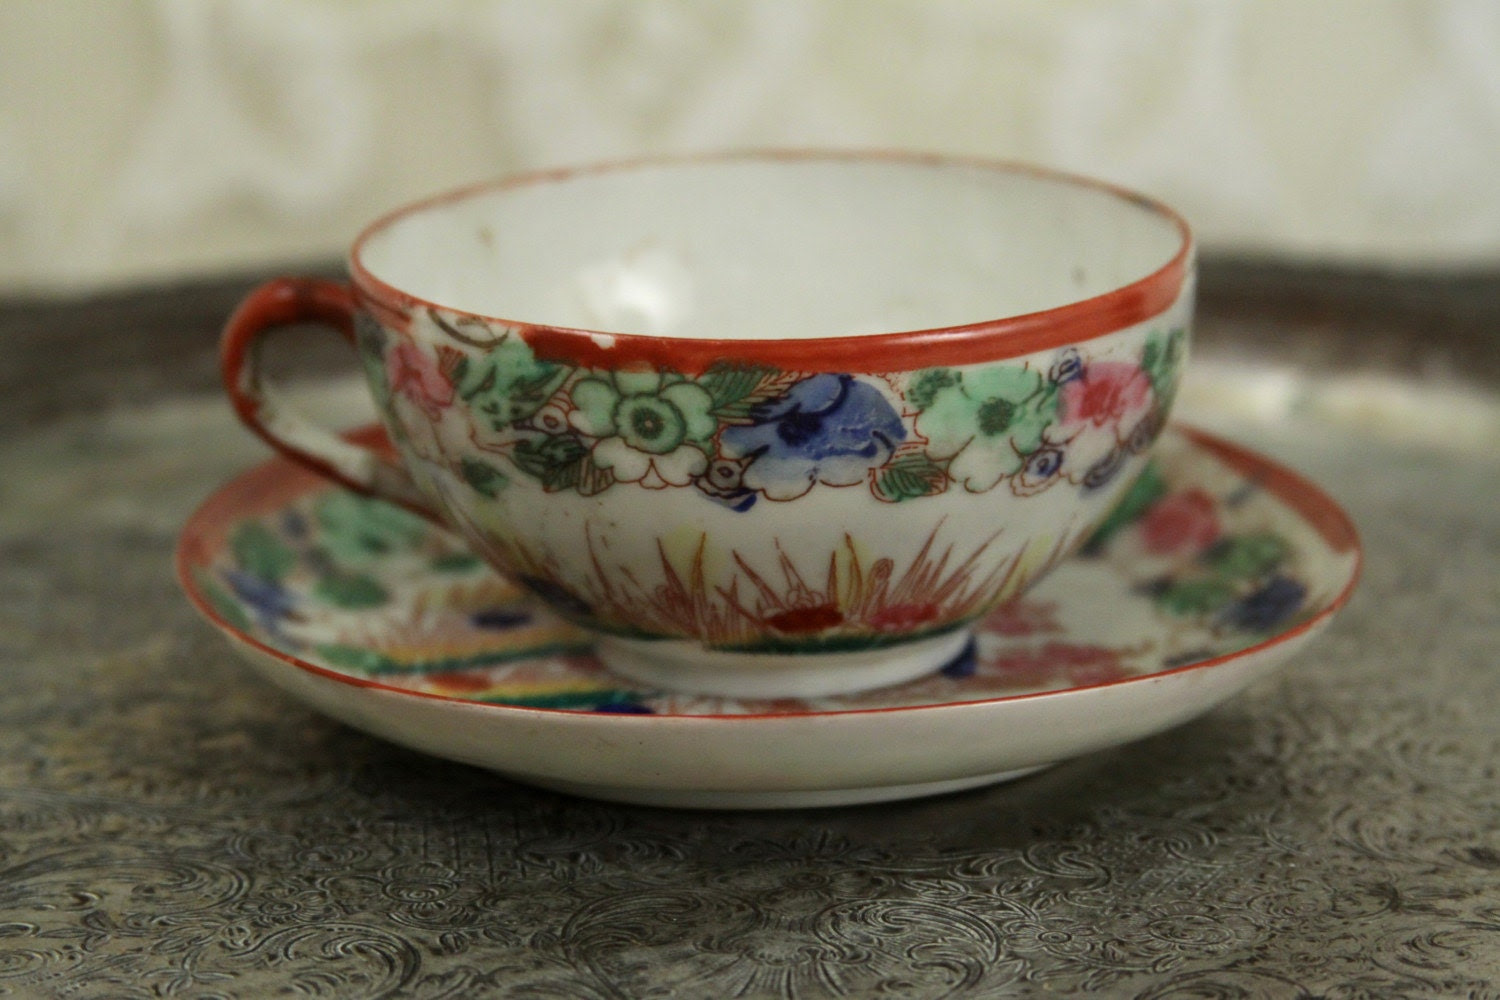 SALE --  Beautiful JAPANESE tea cup and saucer hand painted GEISHA GARDEN theme